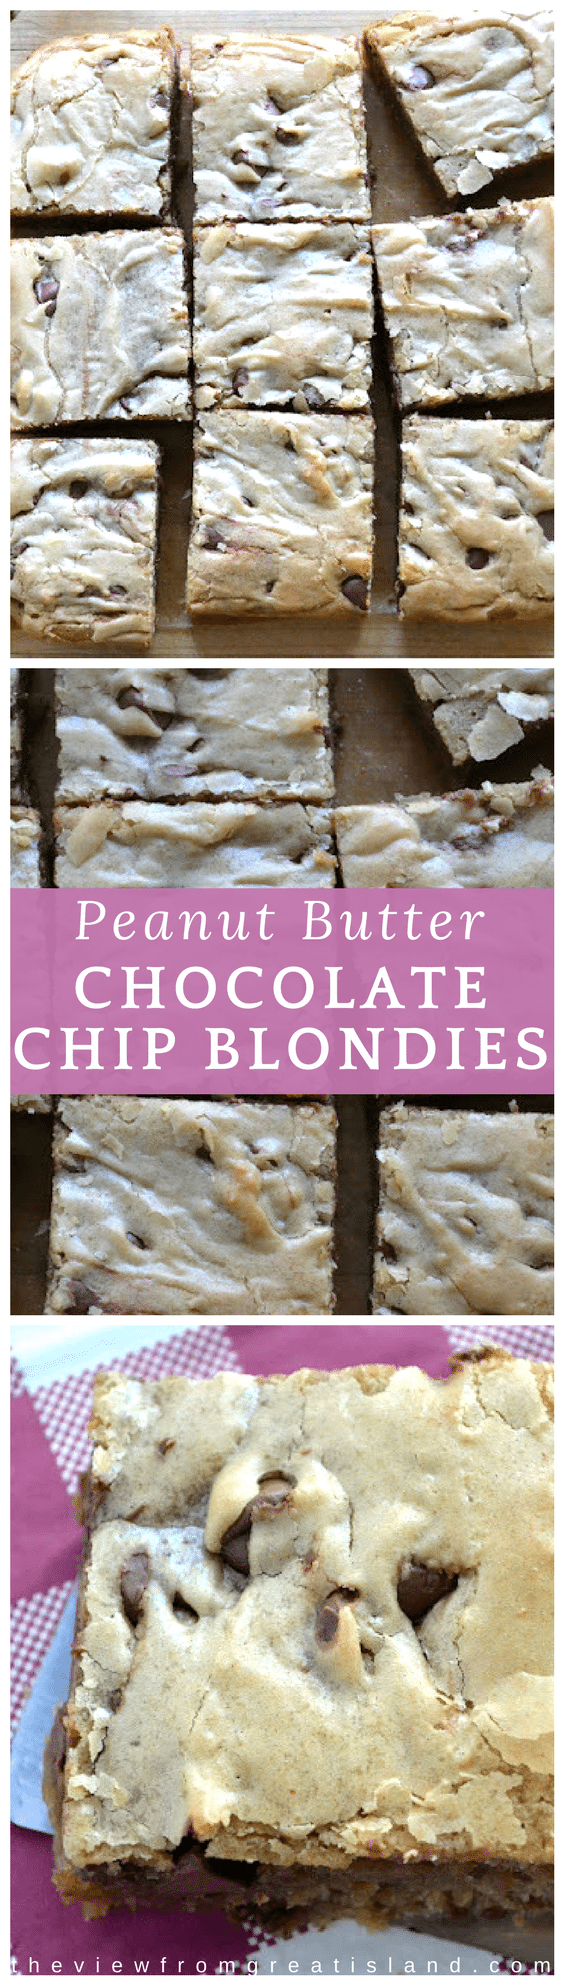 Peanut Butter Chocolate Chip Blondies ~ everybody's favorite combo in an easy one bowl dessert, these quick blondies are a delicious way to say 'I'm thinking of you'. #blondies #chocolatechip #peanutbutterchocolatechip #peanutbutterblondies #dessert #carepackage #bars #cookiebars #dessertbars #bakesale #afterschoolsnack